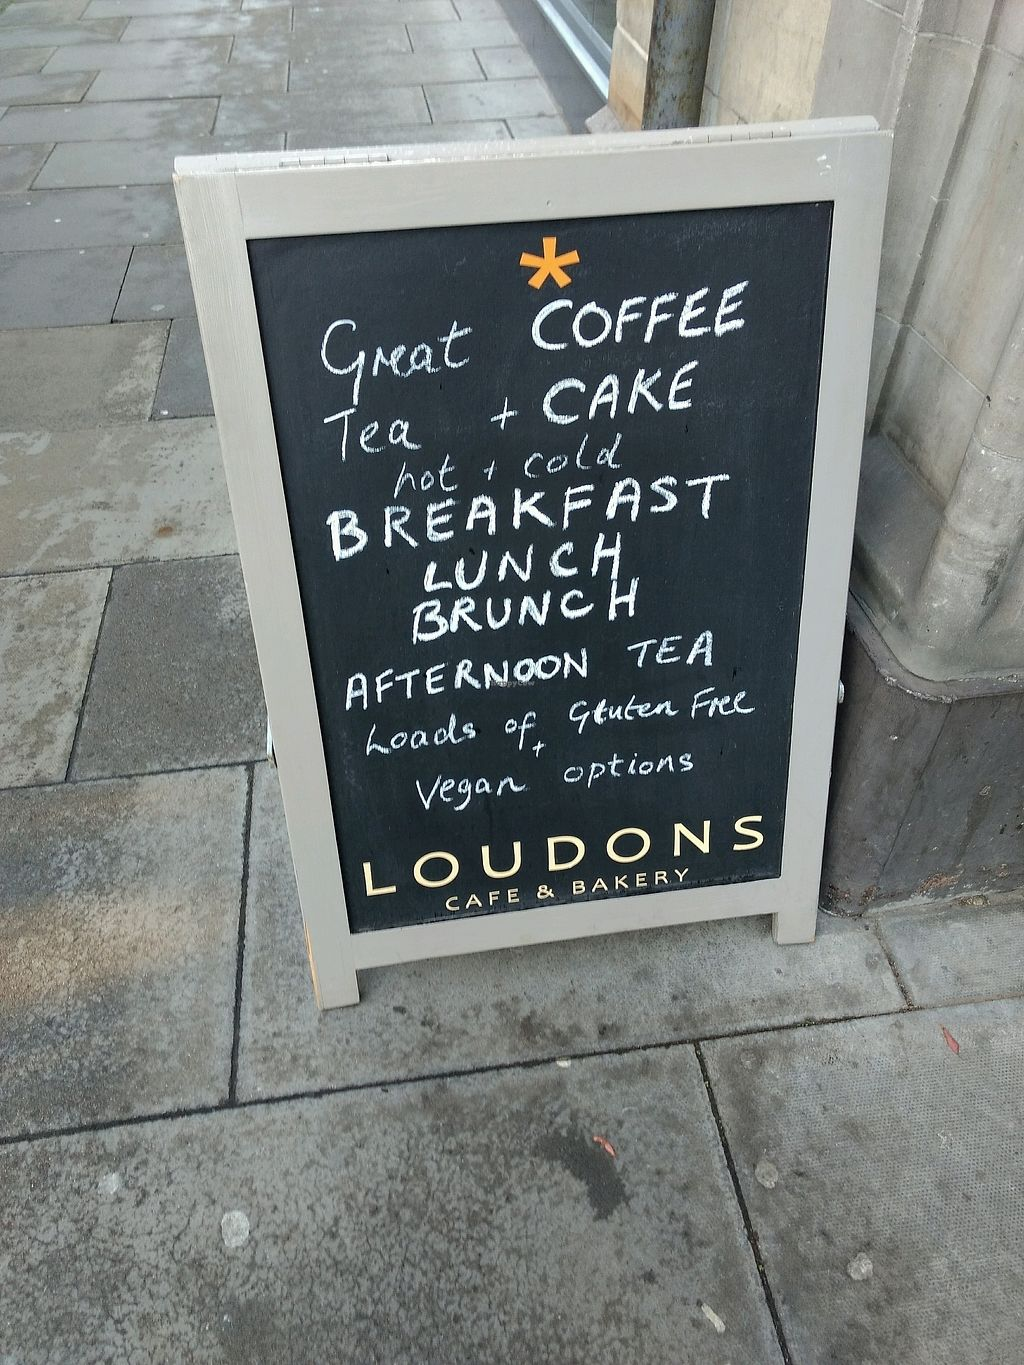 """Photo of Loudons Cafe and Bakery  by <a href=""""/members/profile/craigmc"""">craigmc</a> <br/>the sign <br/> November 24, 2017  - <a href='/contact/abuse/image/105784/328660'>Report</a>"""